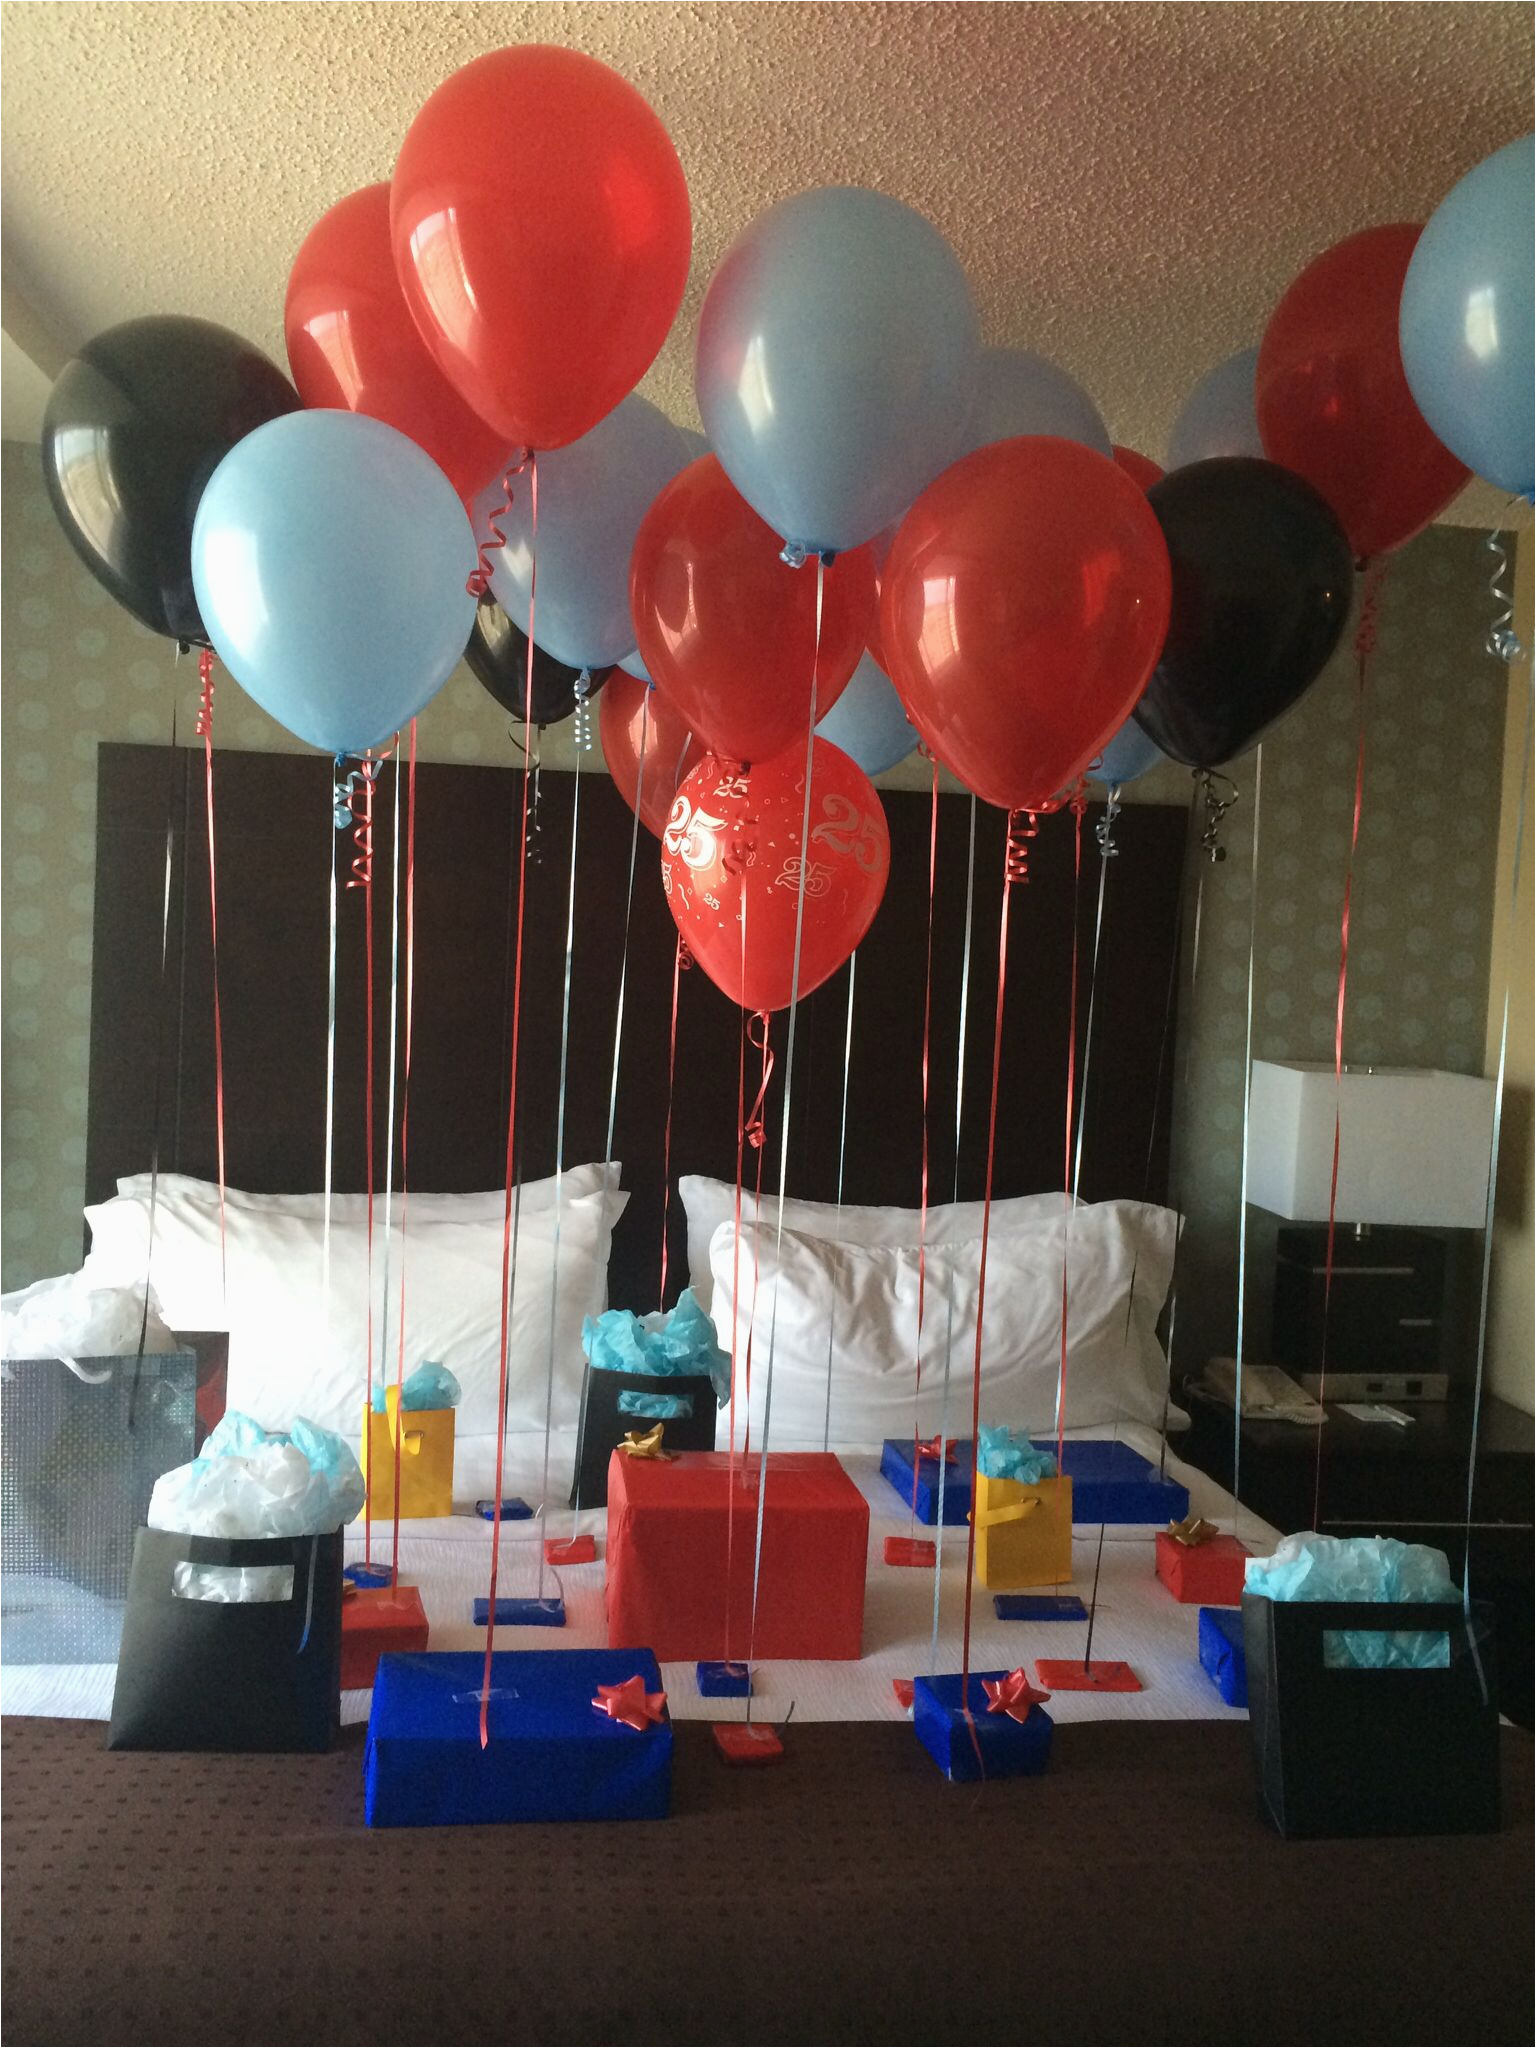 Easy Birthday Gifts for Him 25 Gifts for 25th Birthday Amazing Birthday Idea He Loved